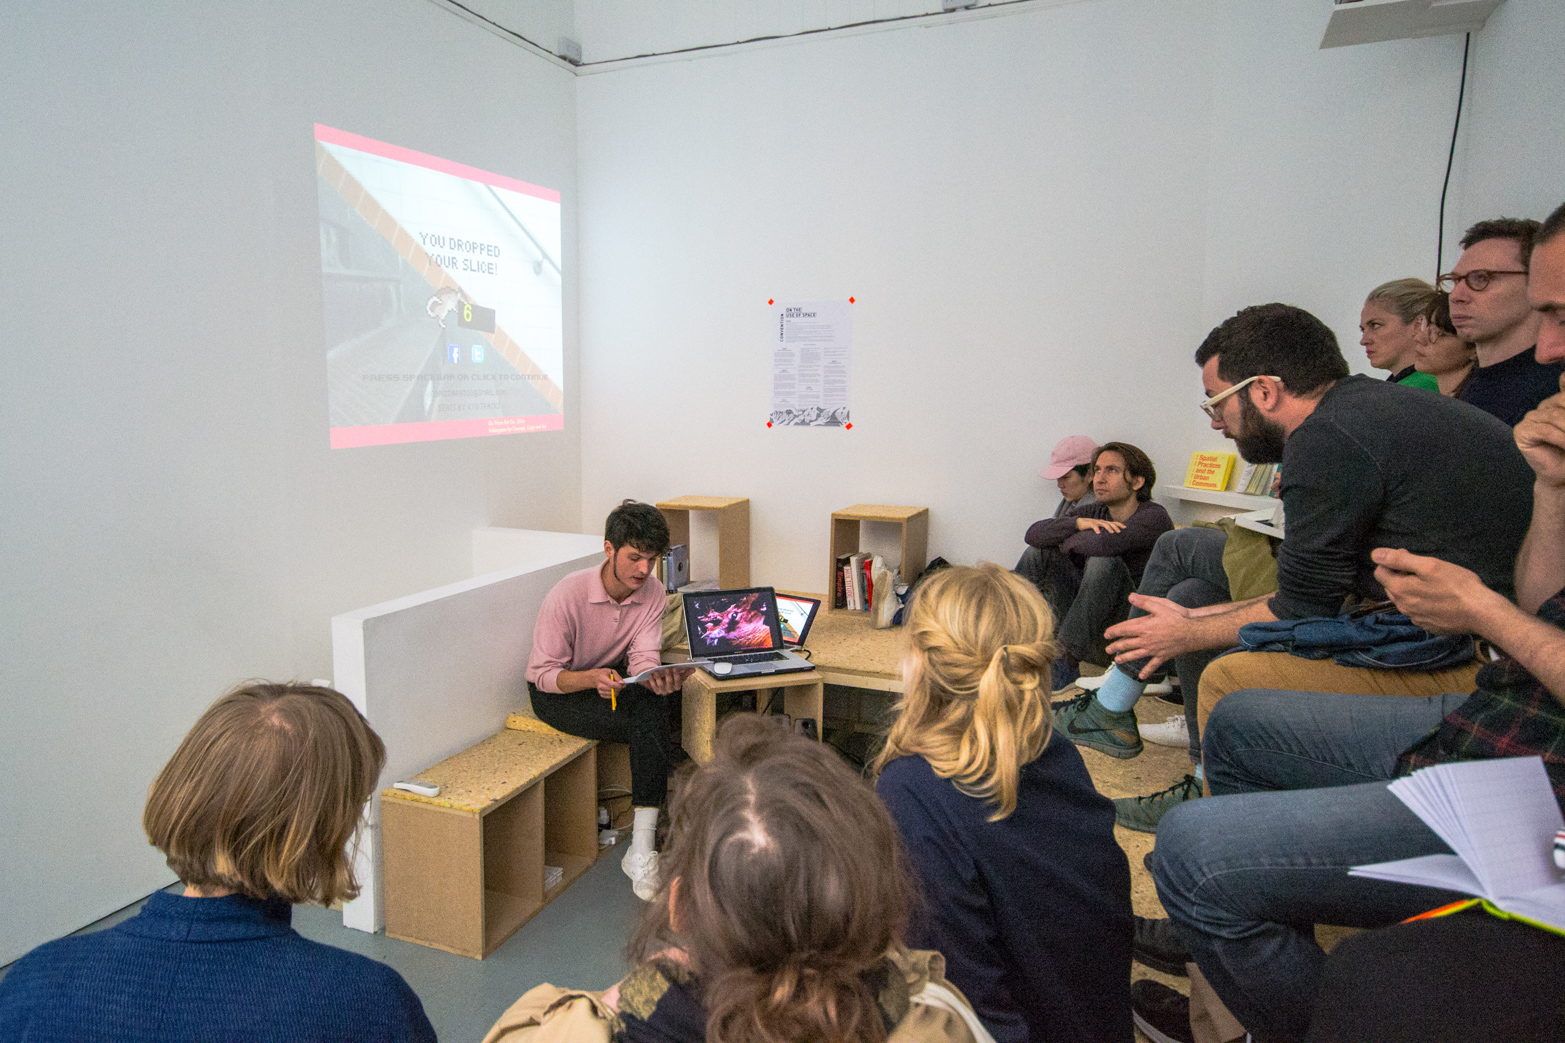 Sabel Gavaldon's talk, 'An Urban Bestiary' at Tenderpixel.